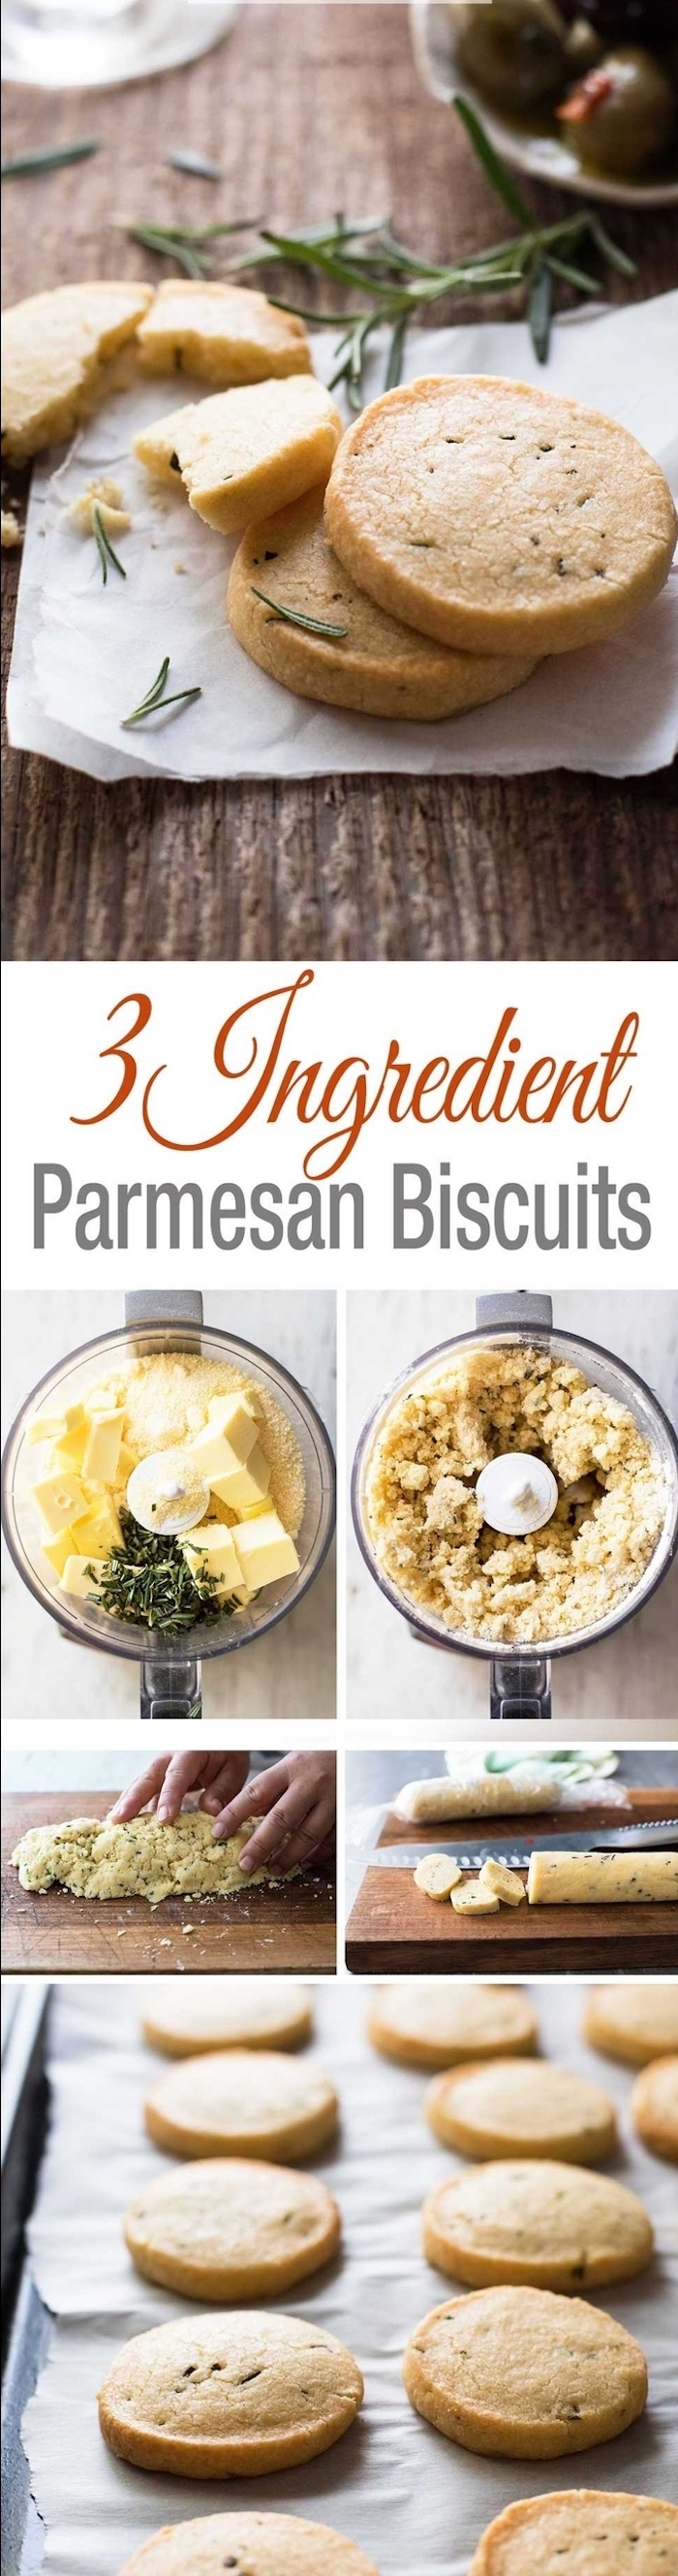 parmesan buscuits, easy vegetarian appetizers, step by step, diy recipe